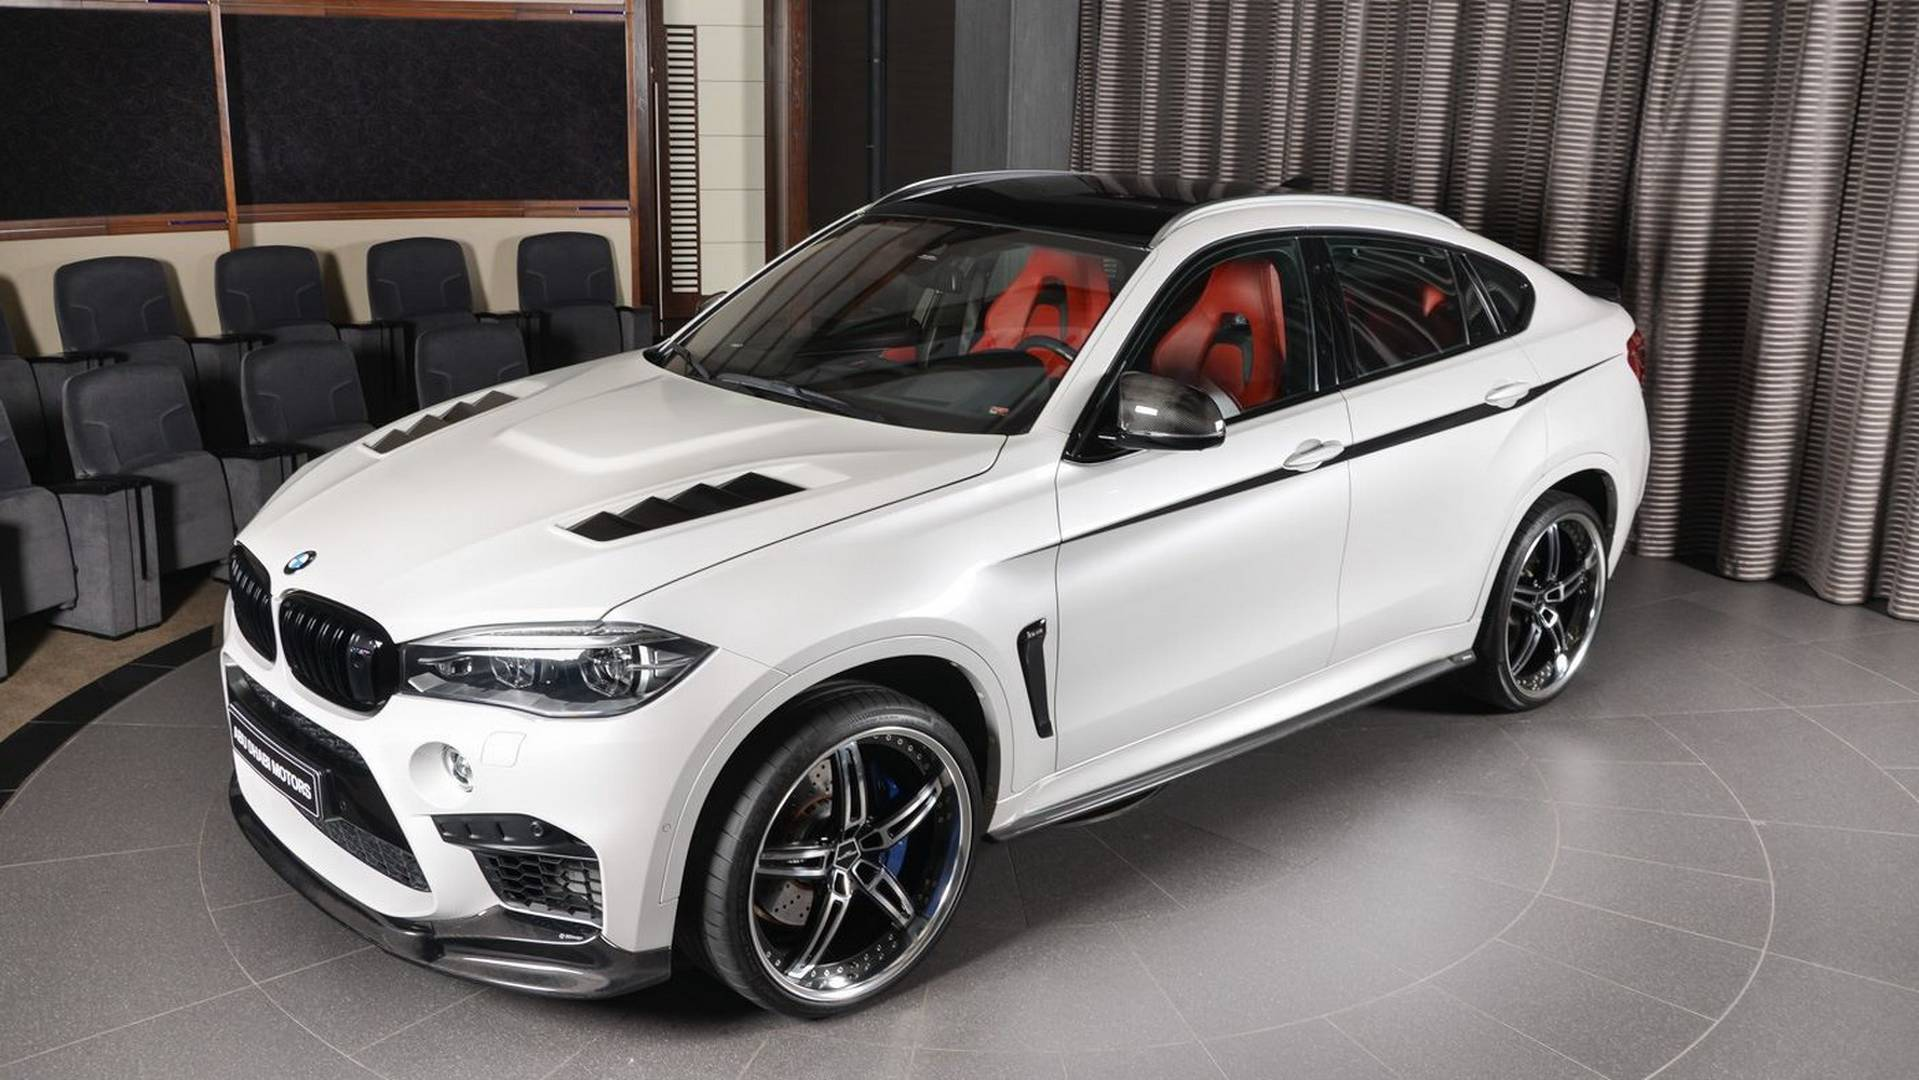 bmw x6 m with 23 inch wheels makes the urus look restrained. Black Bedroom Furniture Sets. Home Design Ideas